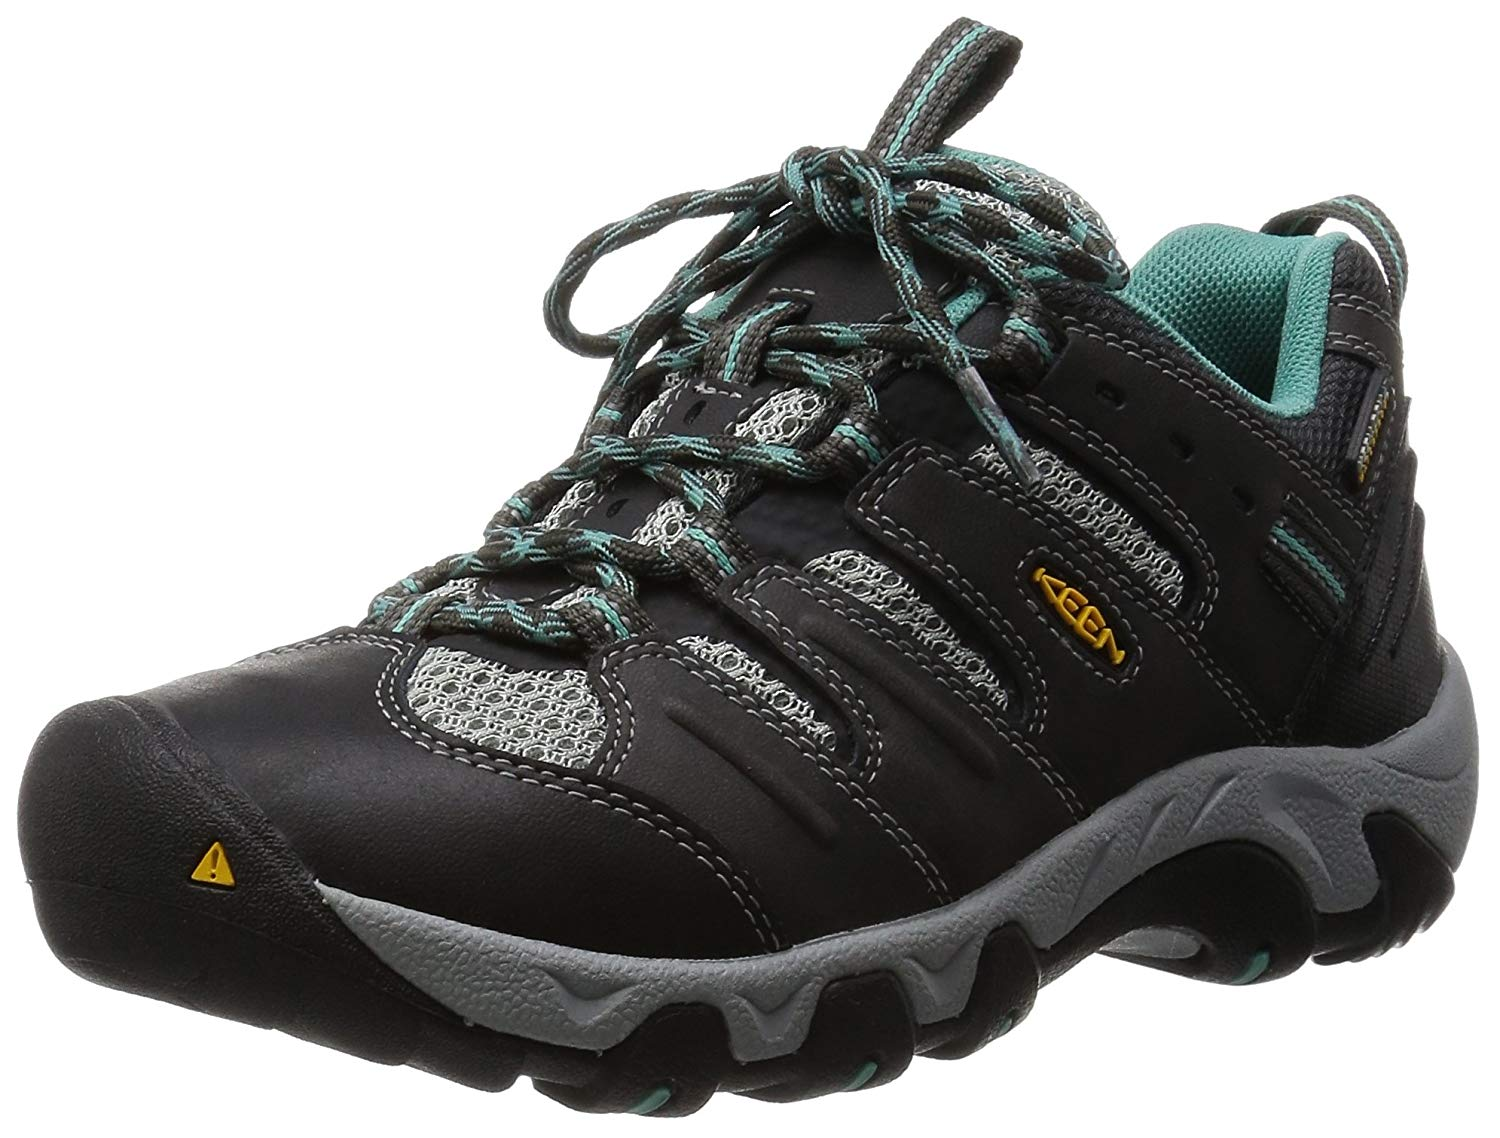 Top 10 Best Hiking Boots Under 100 For Men & Women 2020 Reviews 6